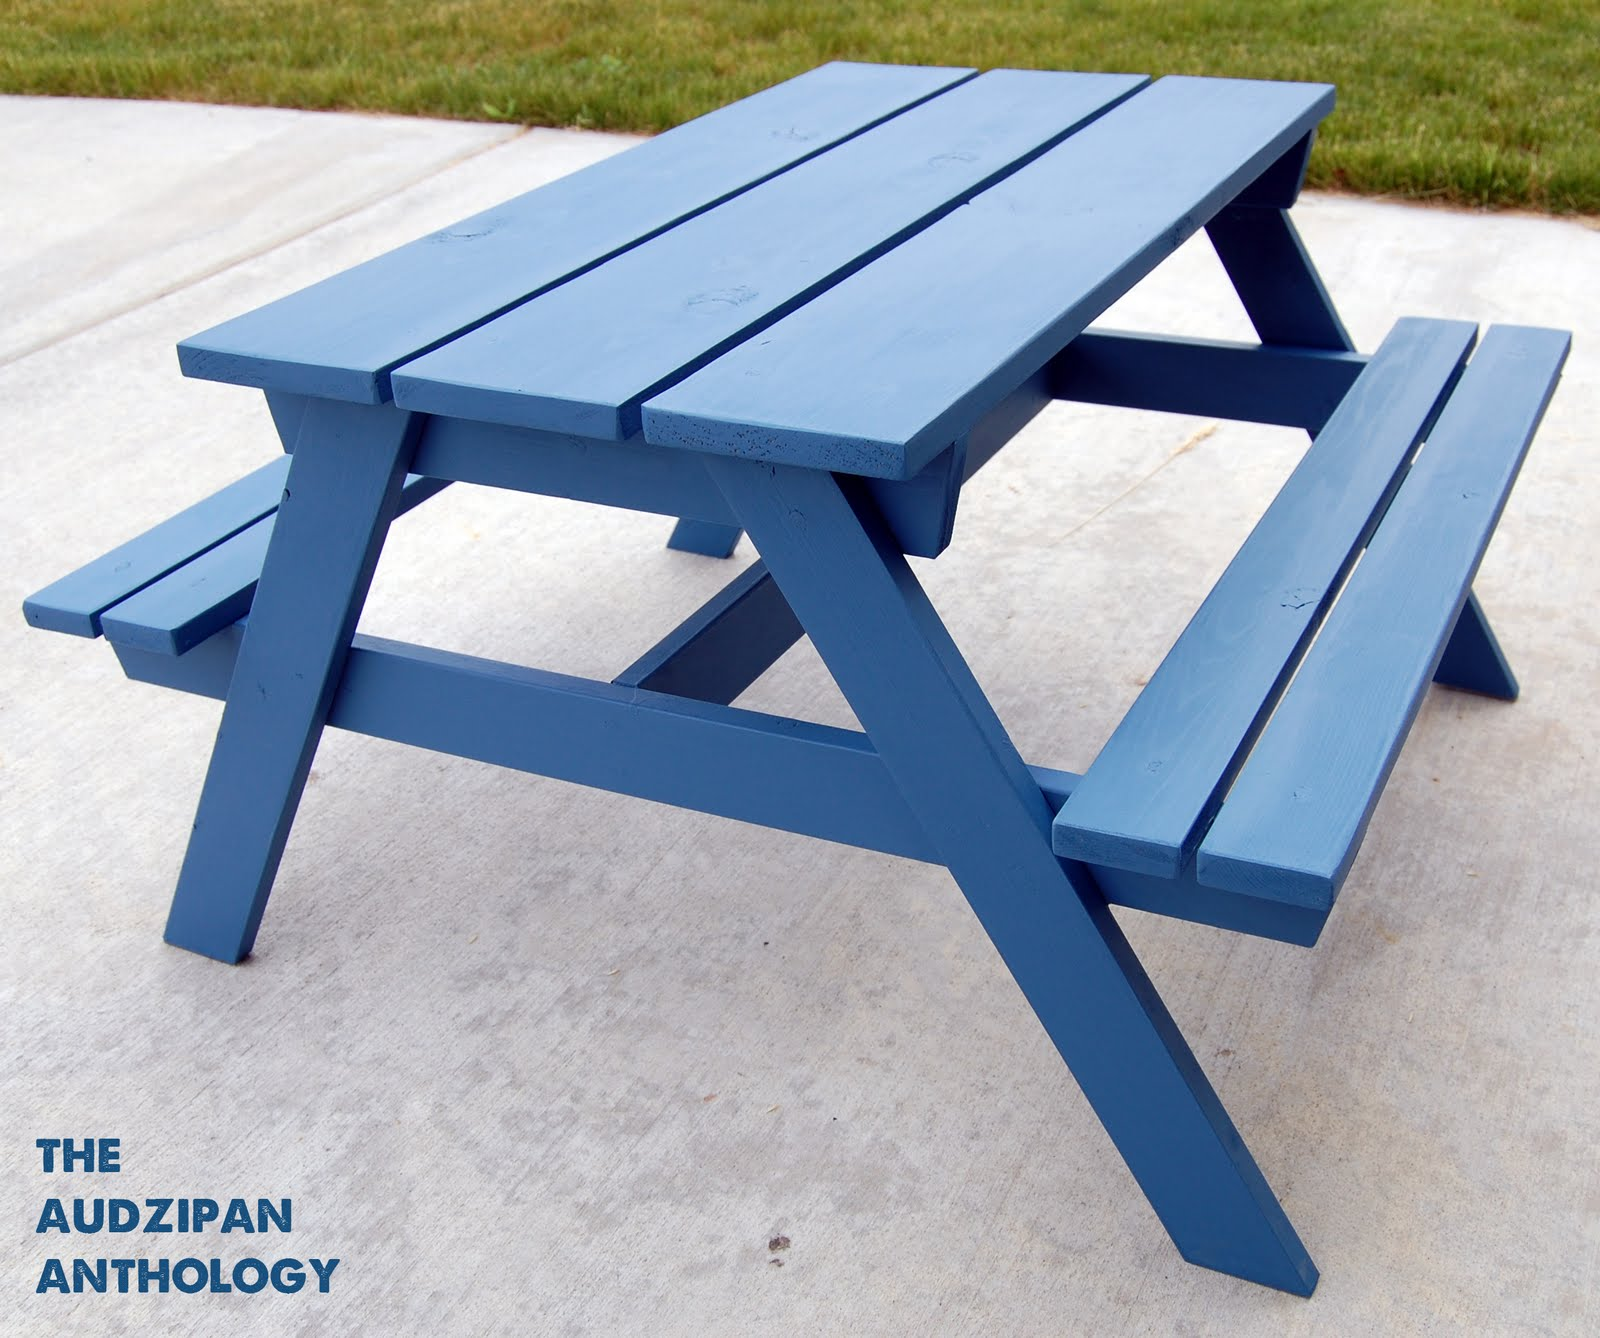 The Audzipan Anthology Toddler Picnic Table - How to stain a picnic table